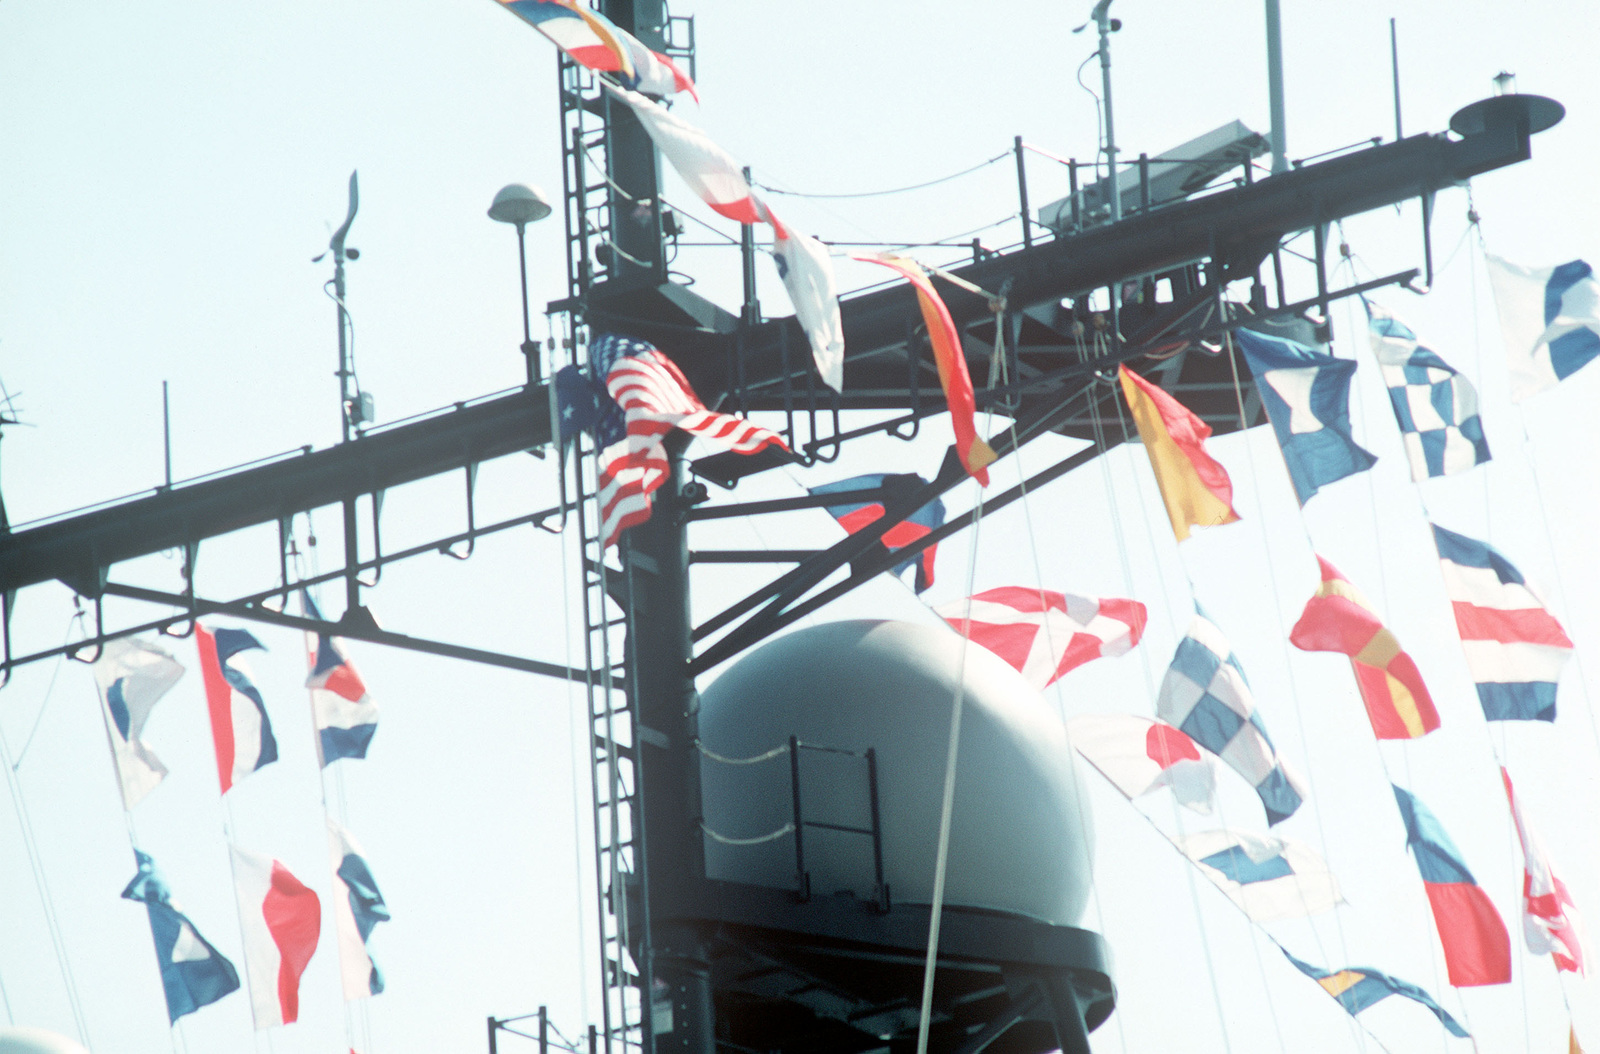 Pennants bedeck the superstructure of the guided missile cruiser USS CHANCELLORSVILLE (CG 62) during the vessel's commissioning ceremony